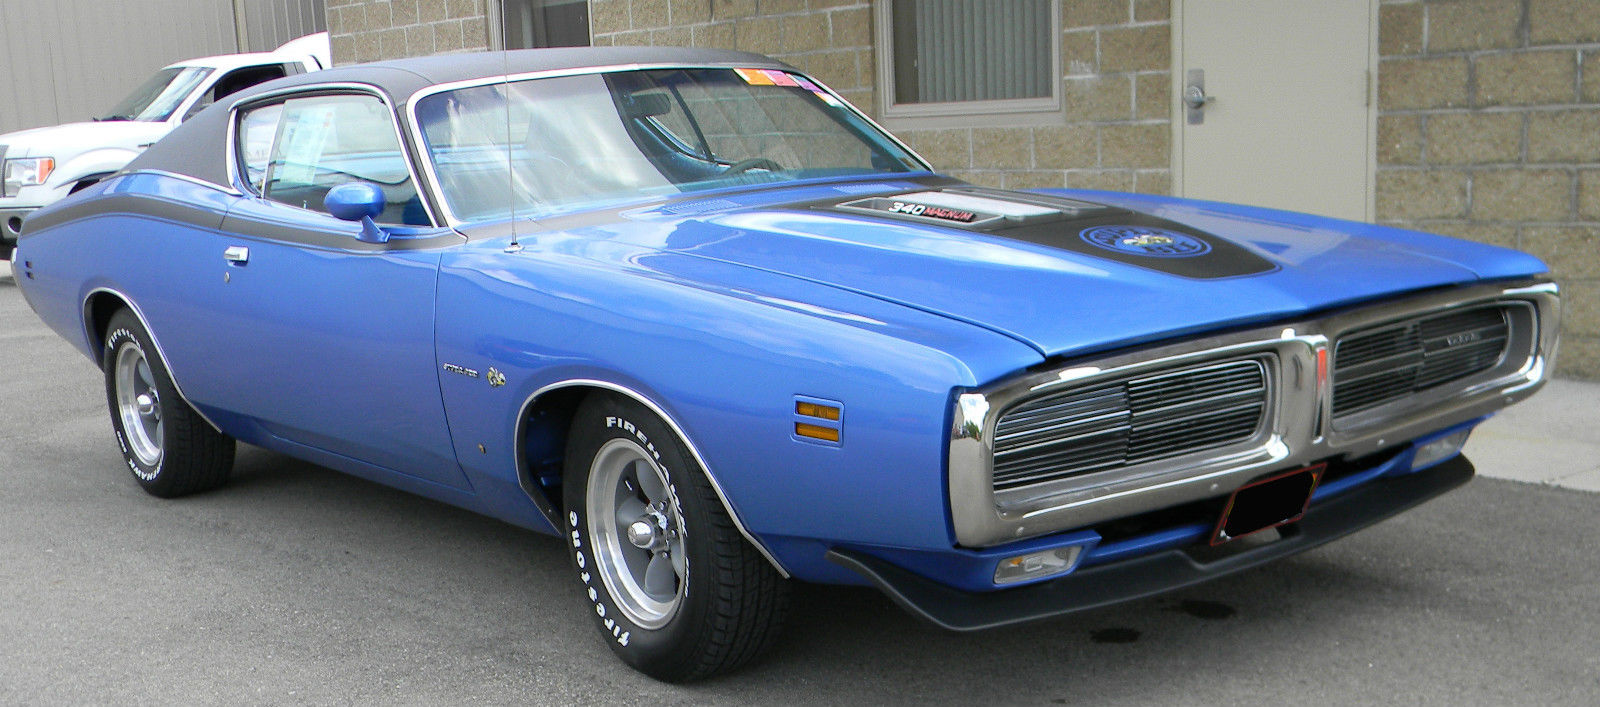 dodge charger super bee fastback 340 ci automatic 1971 dodge charger. Cars Review. Best American Auto & Cars Review